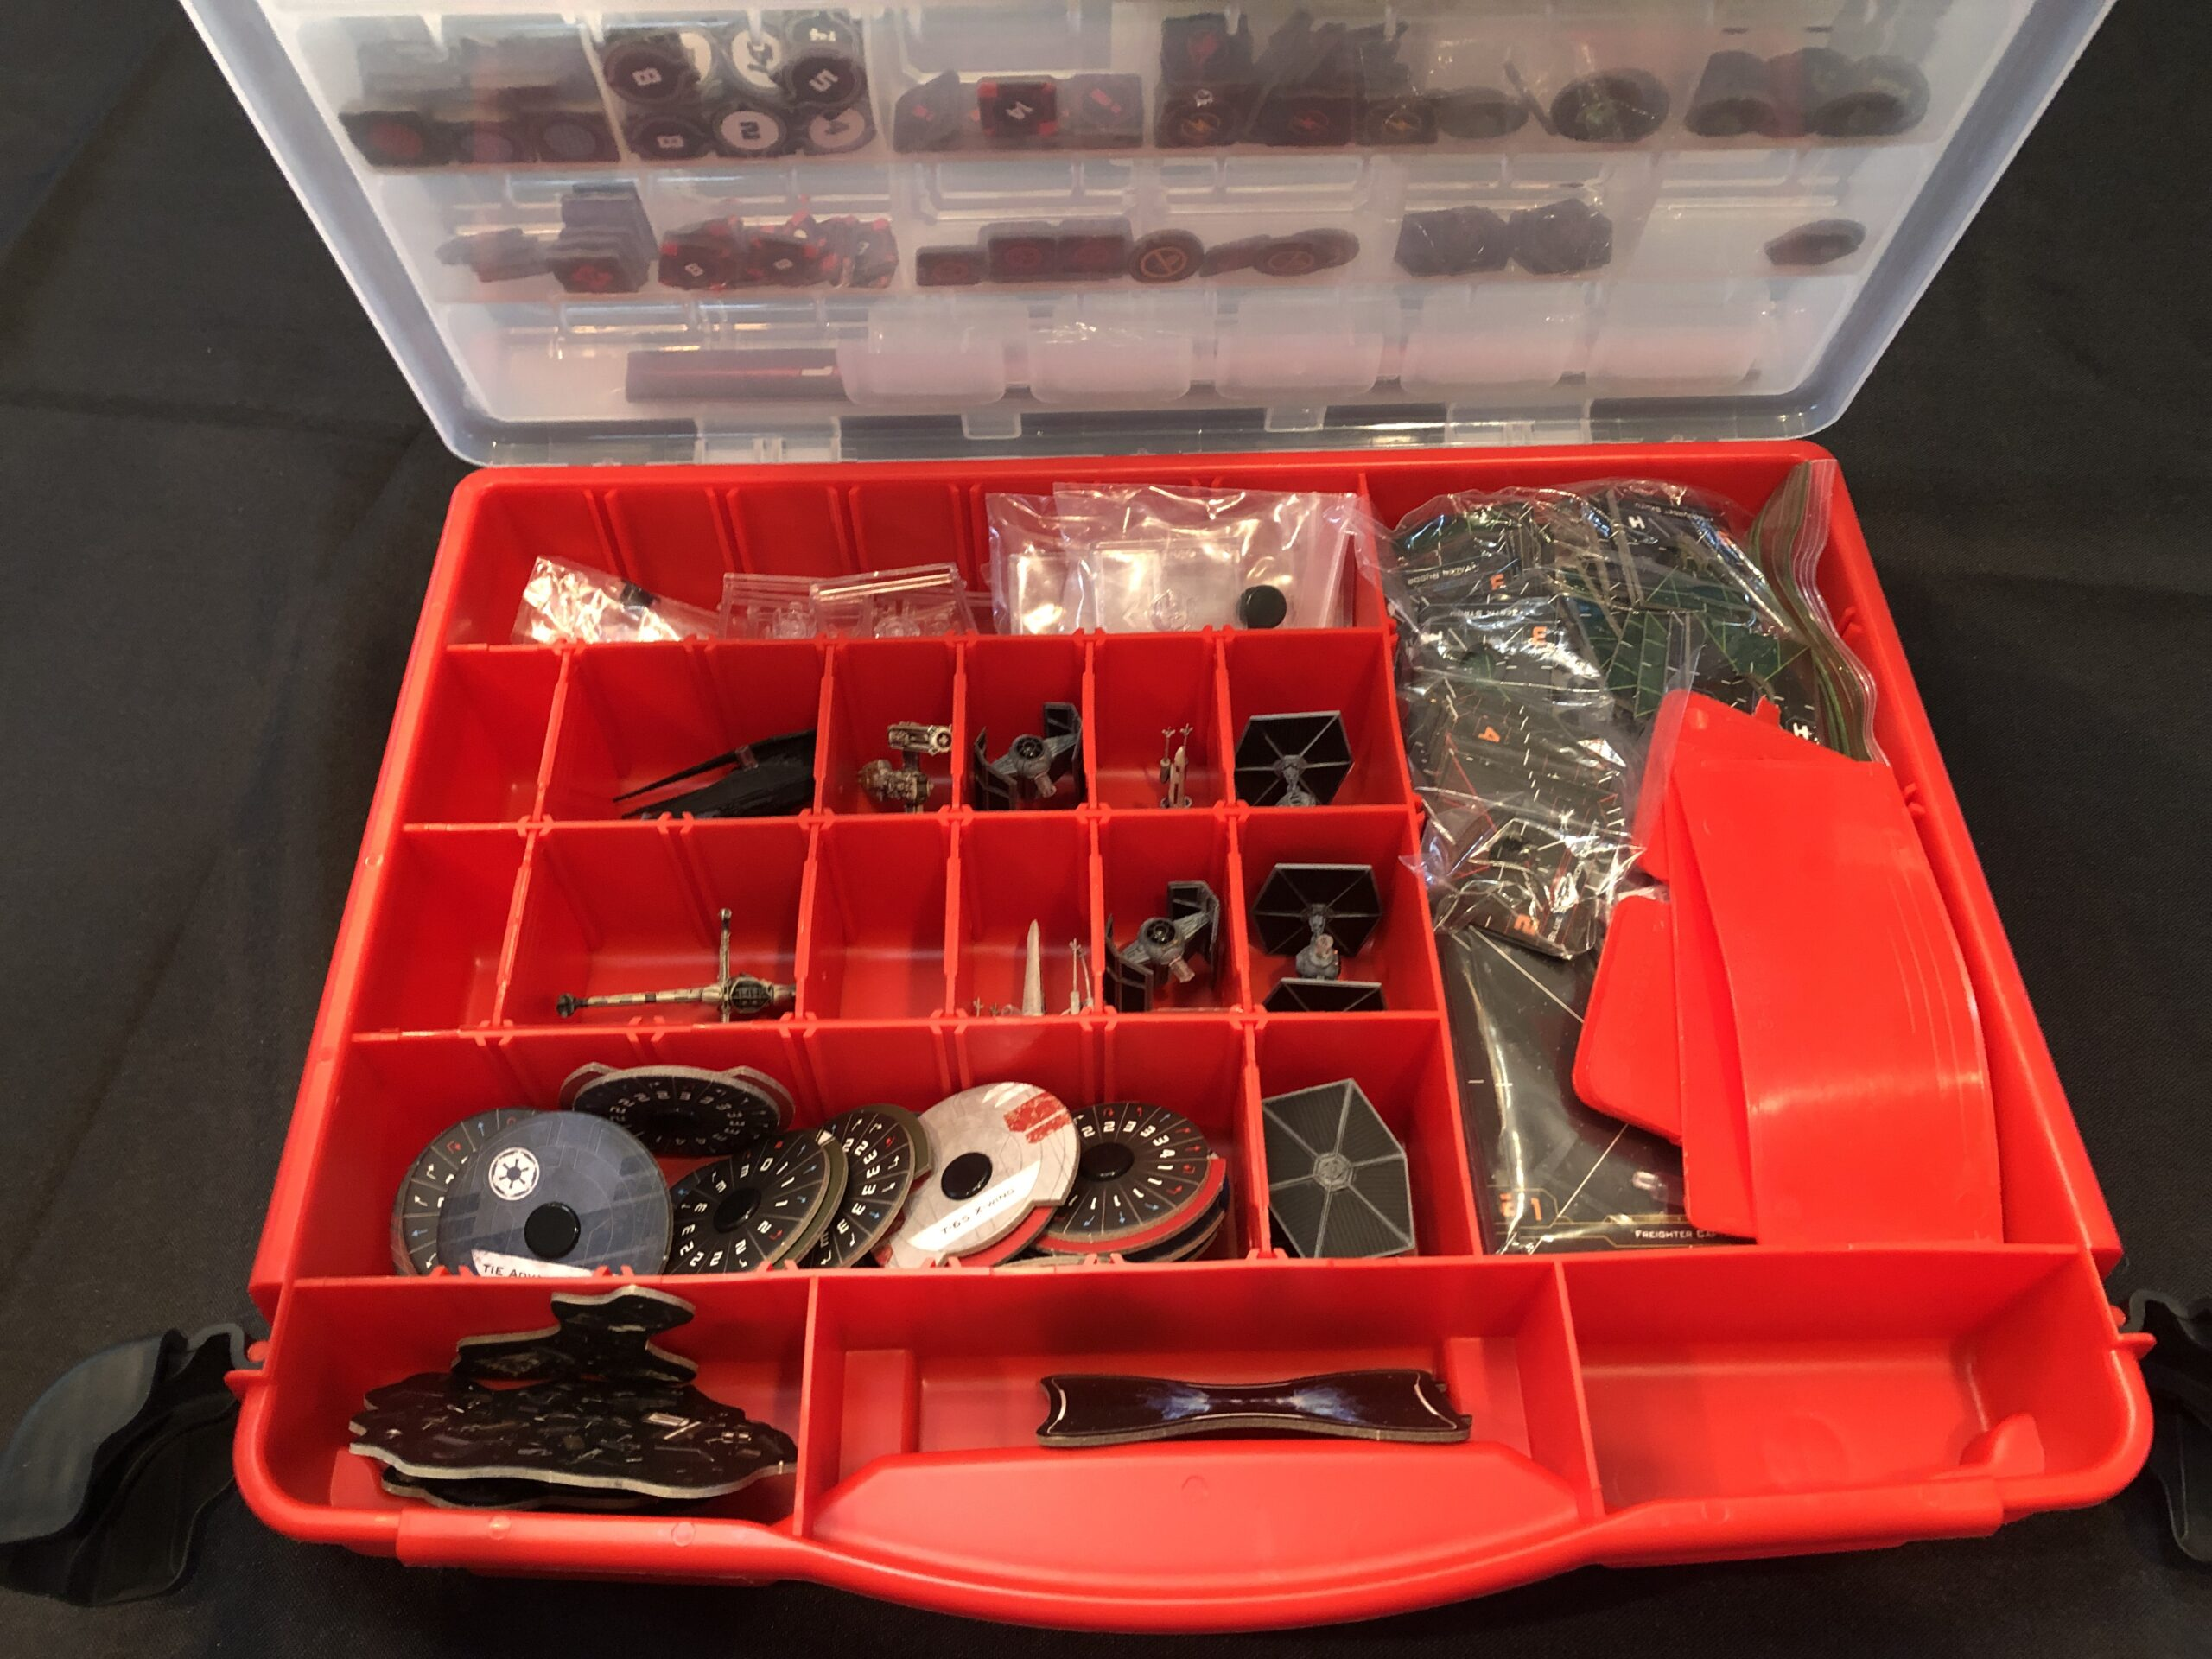 X-Wing Miniatures Game, need a tackle box to hold it all.